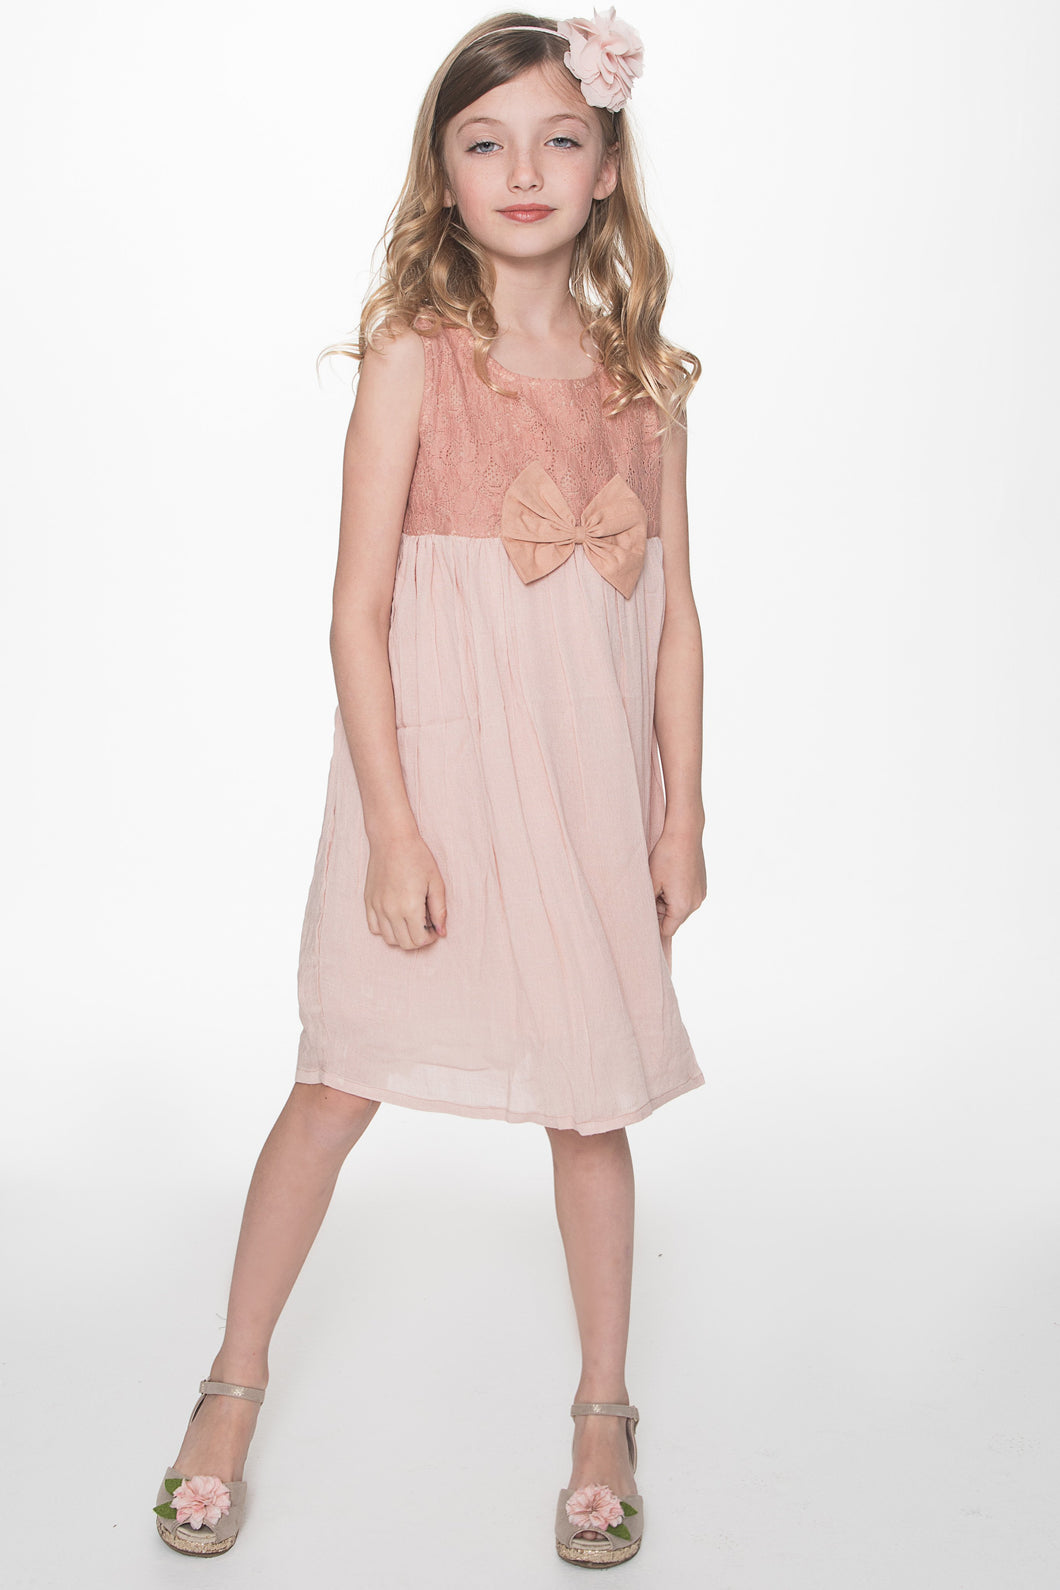 Blush Bow and Lace Detail Dress - Kids Clothing, Dress - Girls Dress, Yo Baby Online - Yo Baby